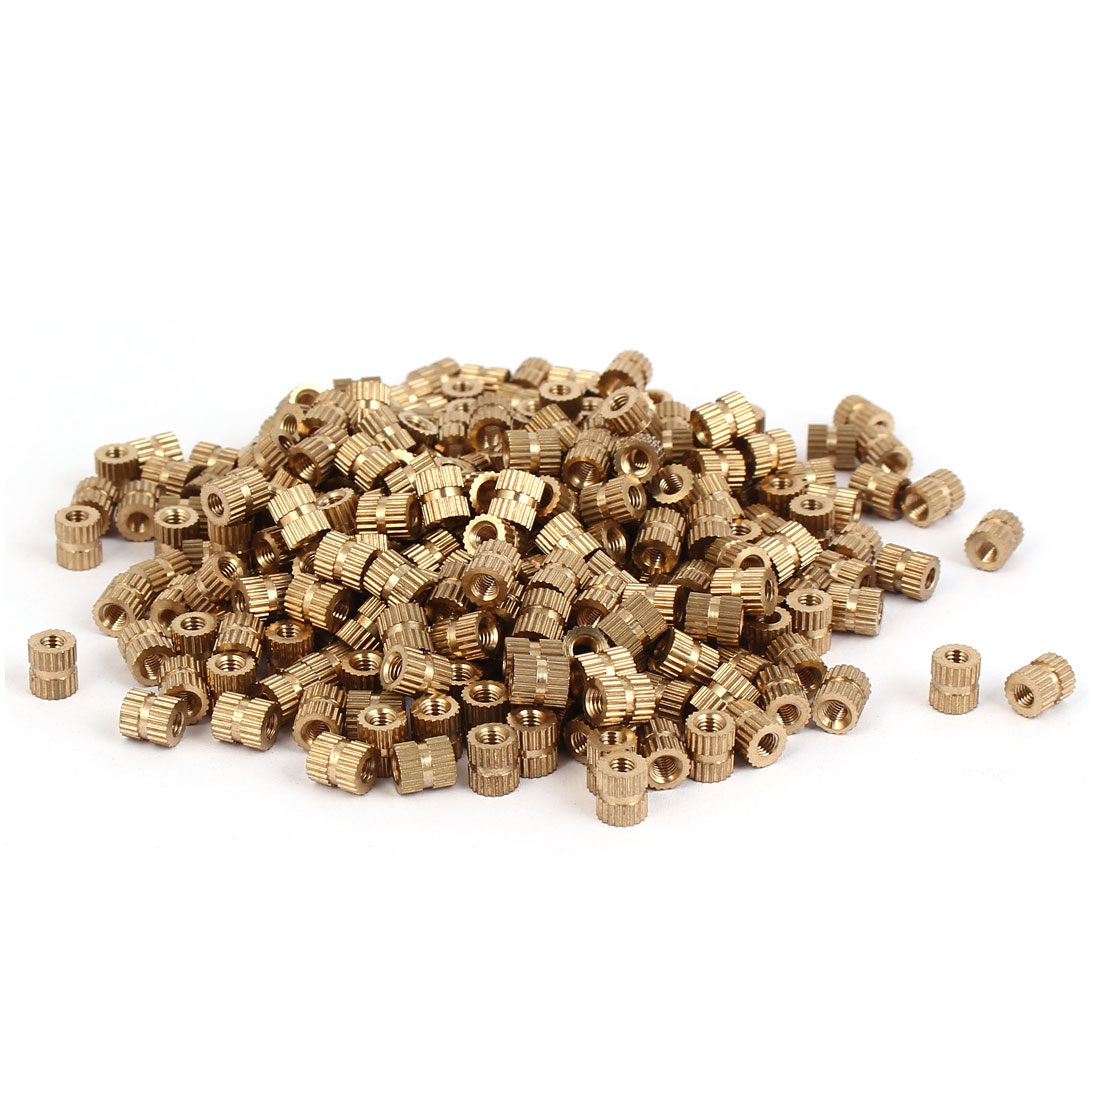 M3 x 6mm Brass Cylinder Injection Molding Knurled Threaded Embedded Nuts 500PCS